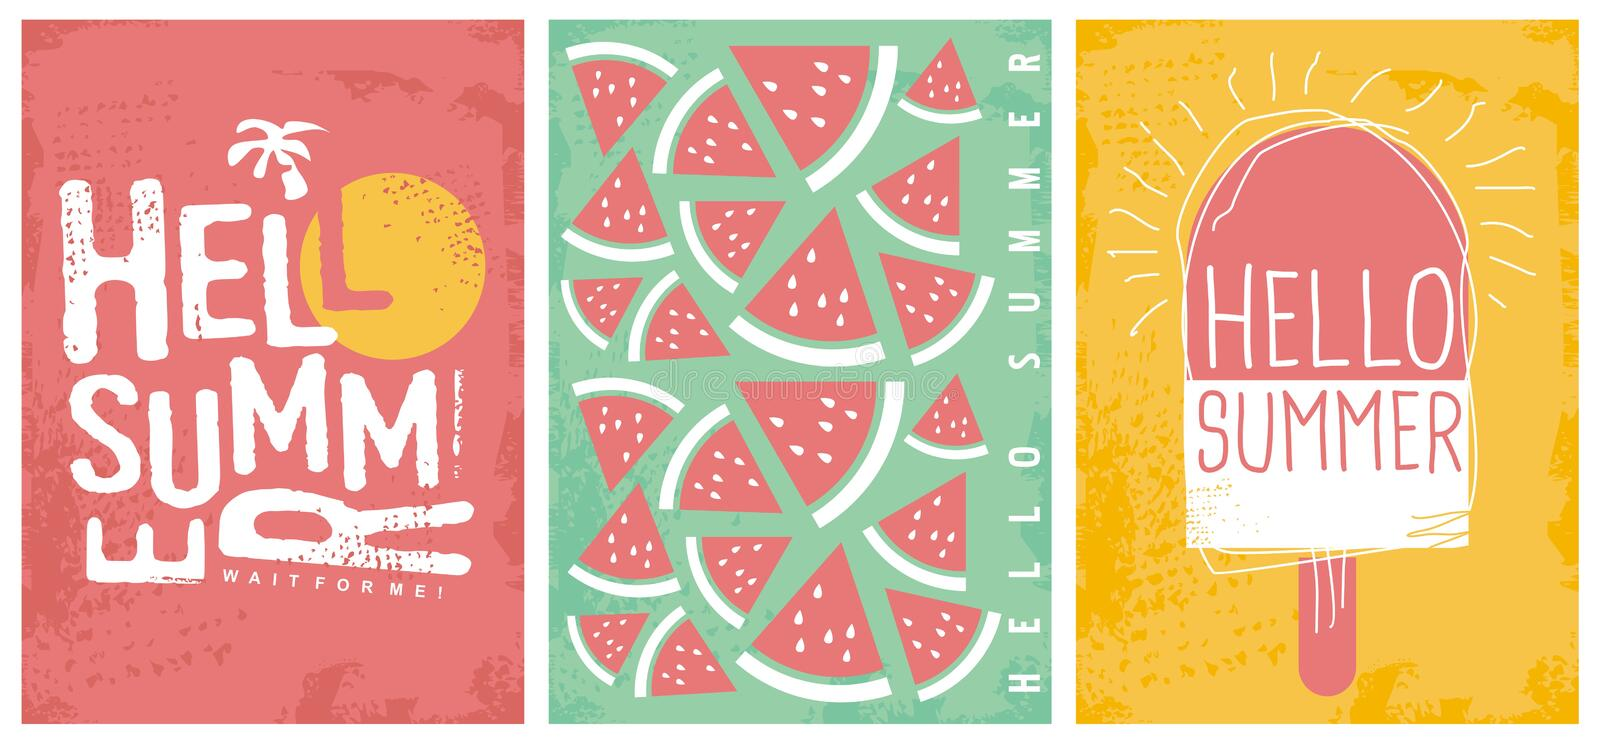 Summer joy creative artistic banners and posters template stock illustration